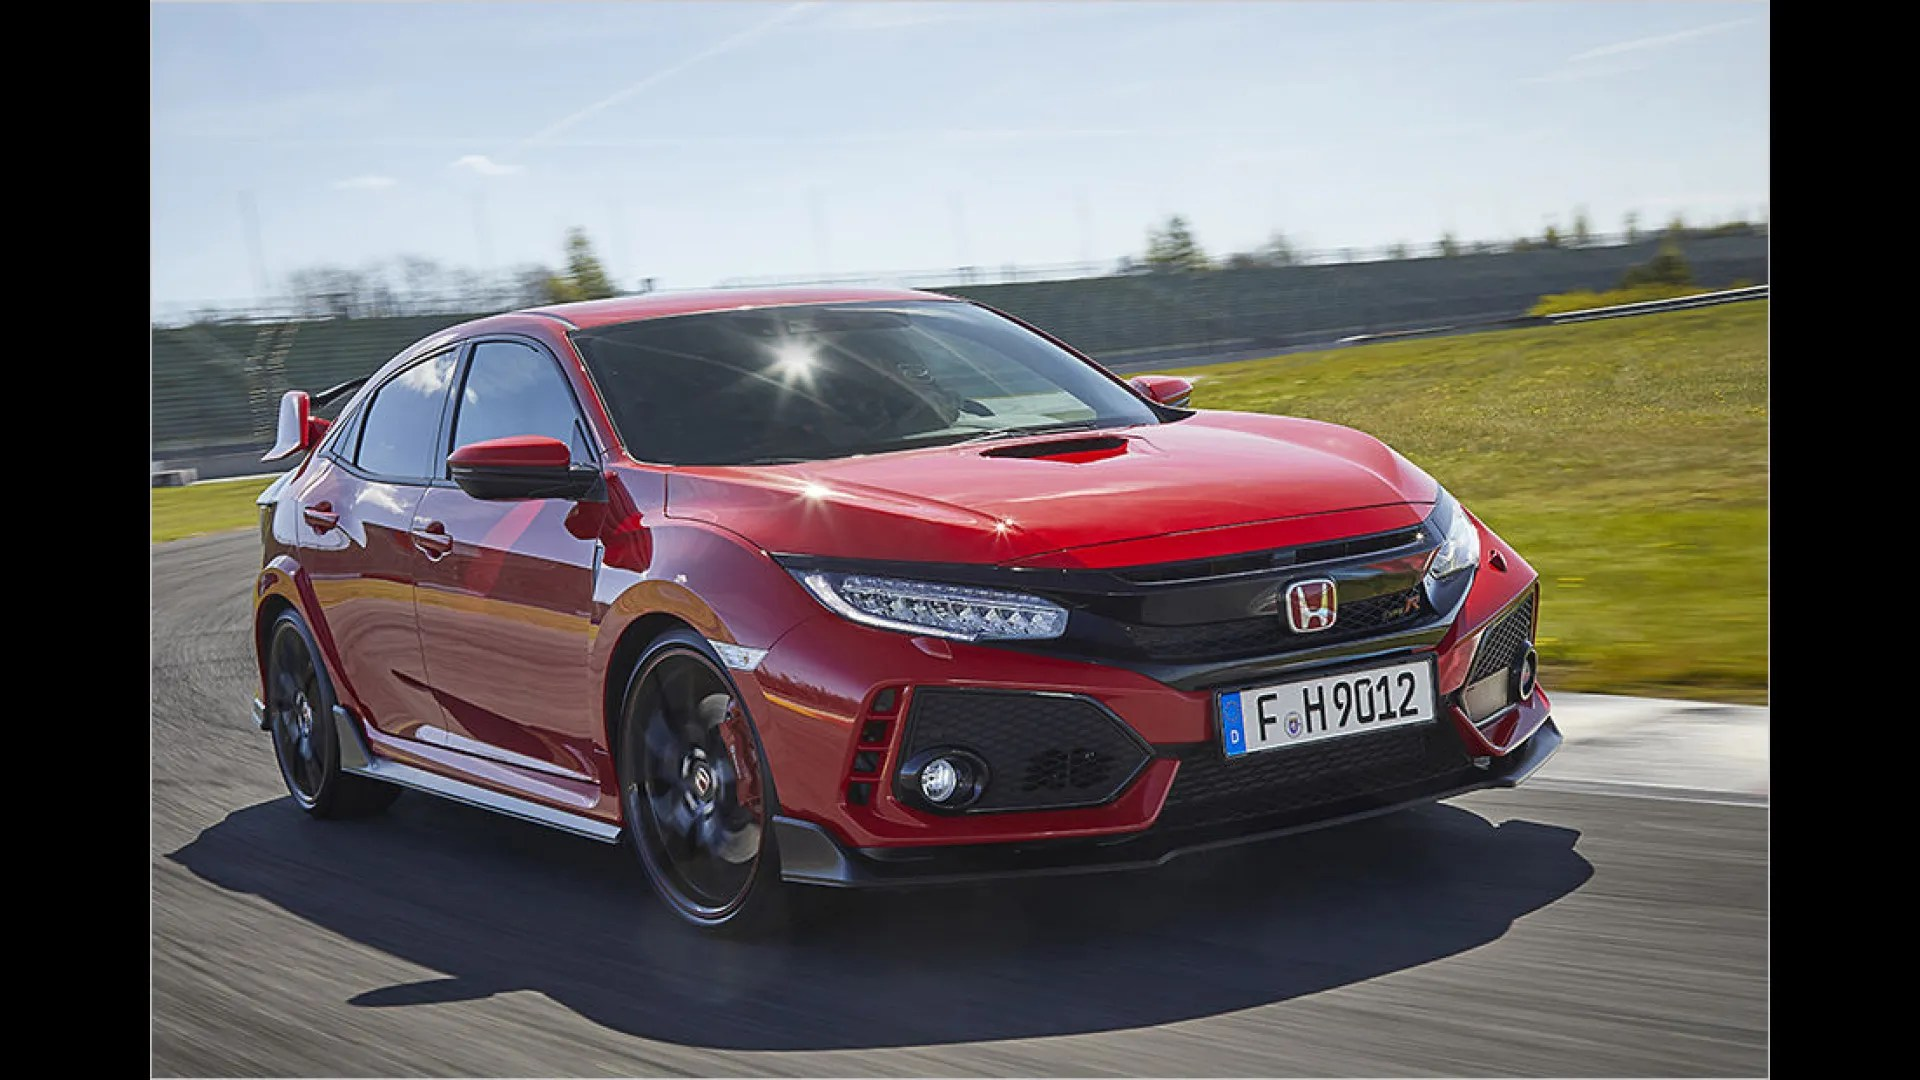 The type r civic shares much in common with its Neuer Honda Civic Type R Im Test